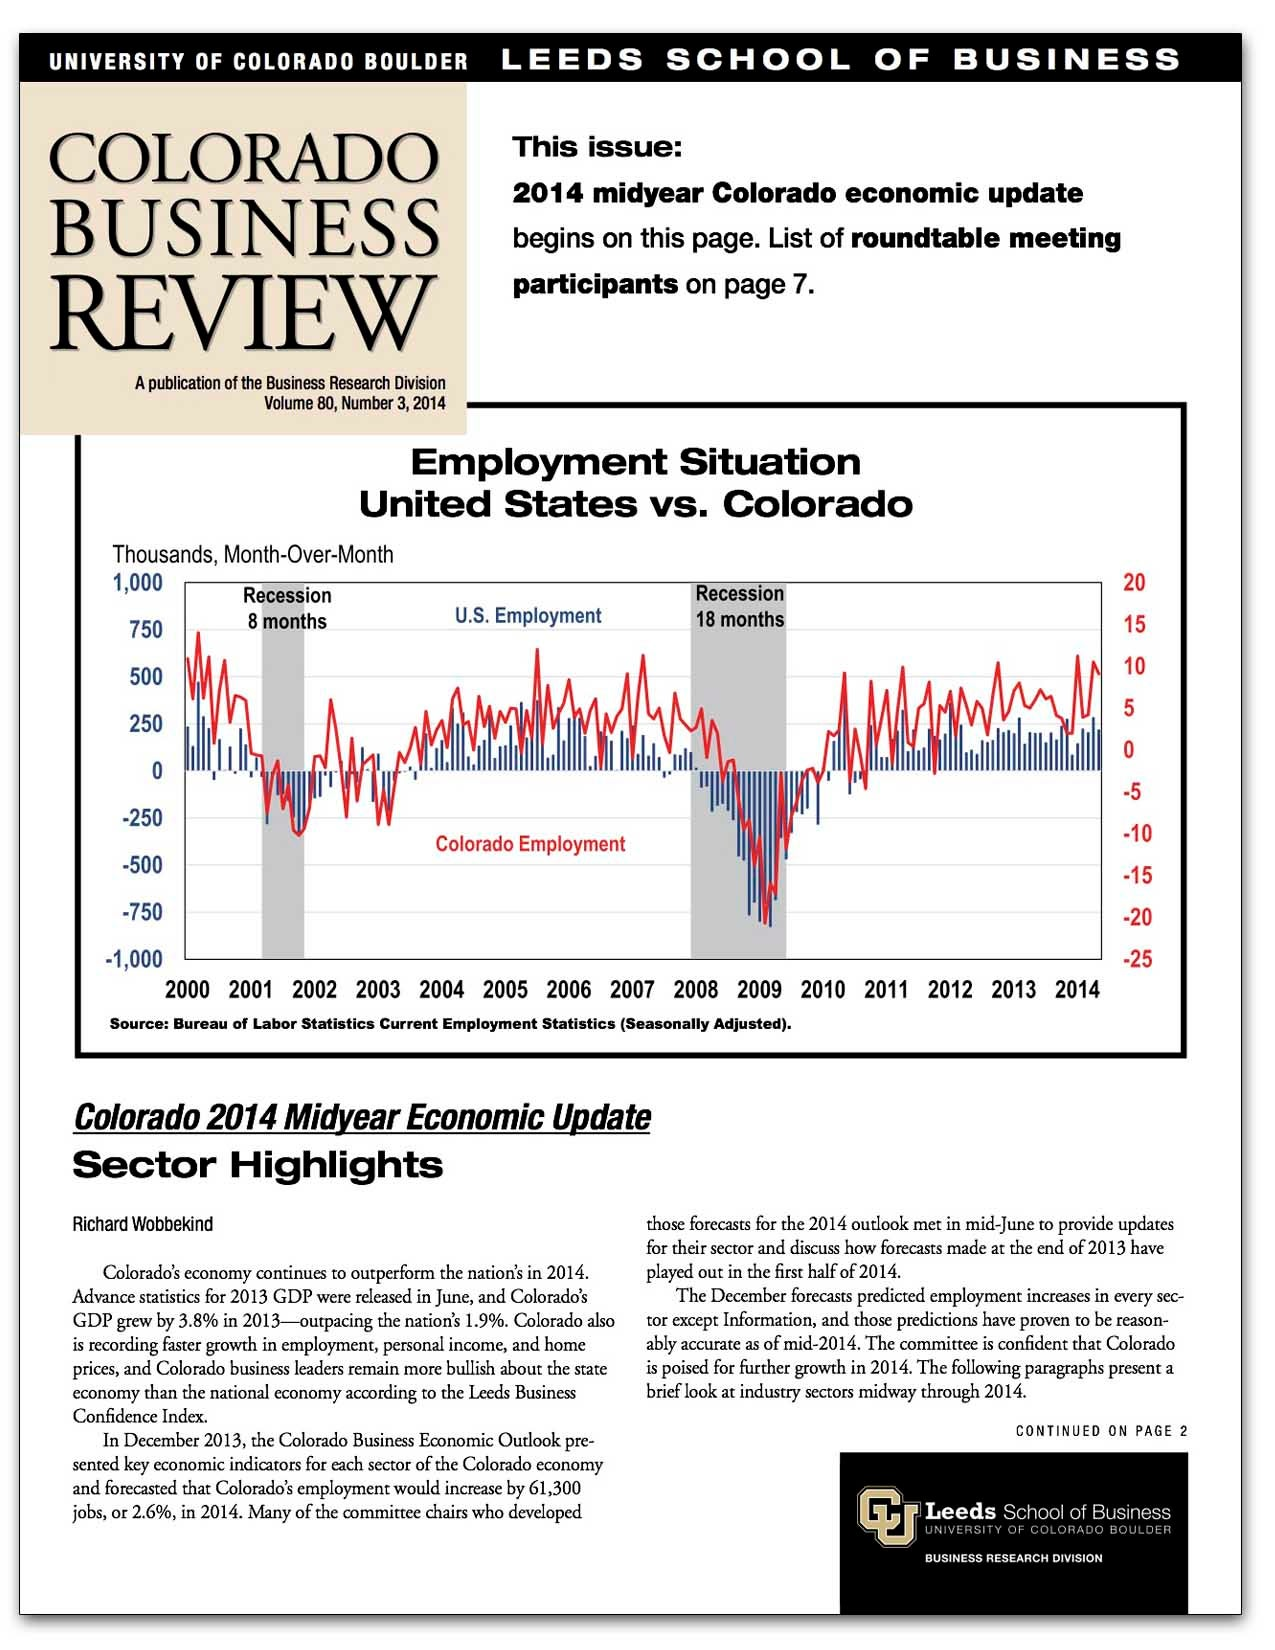 Colorado Business Review, Issue 3, 2014